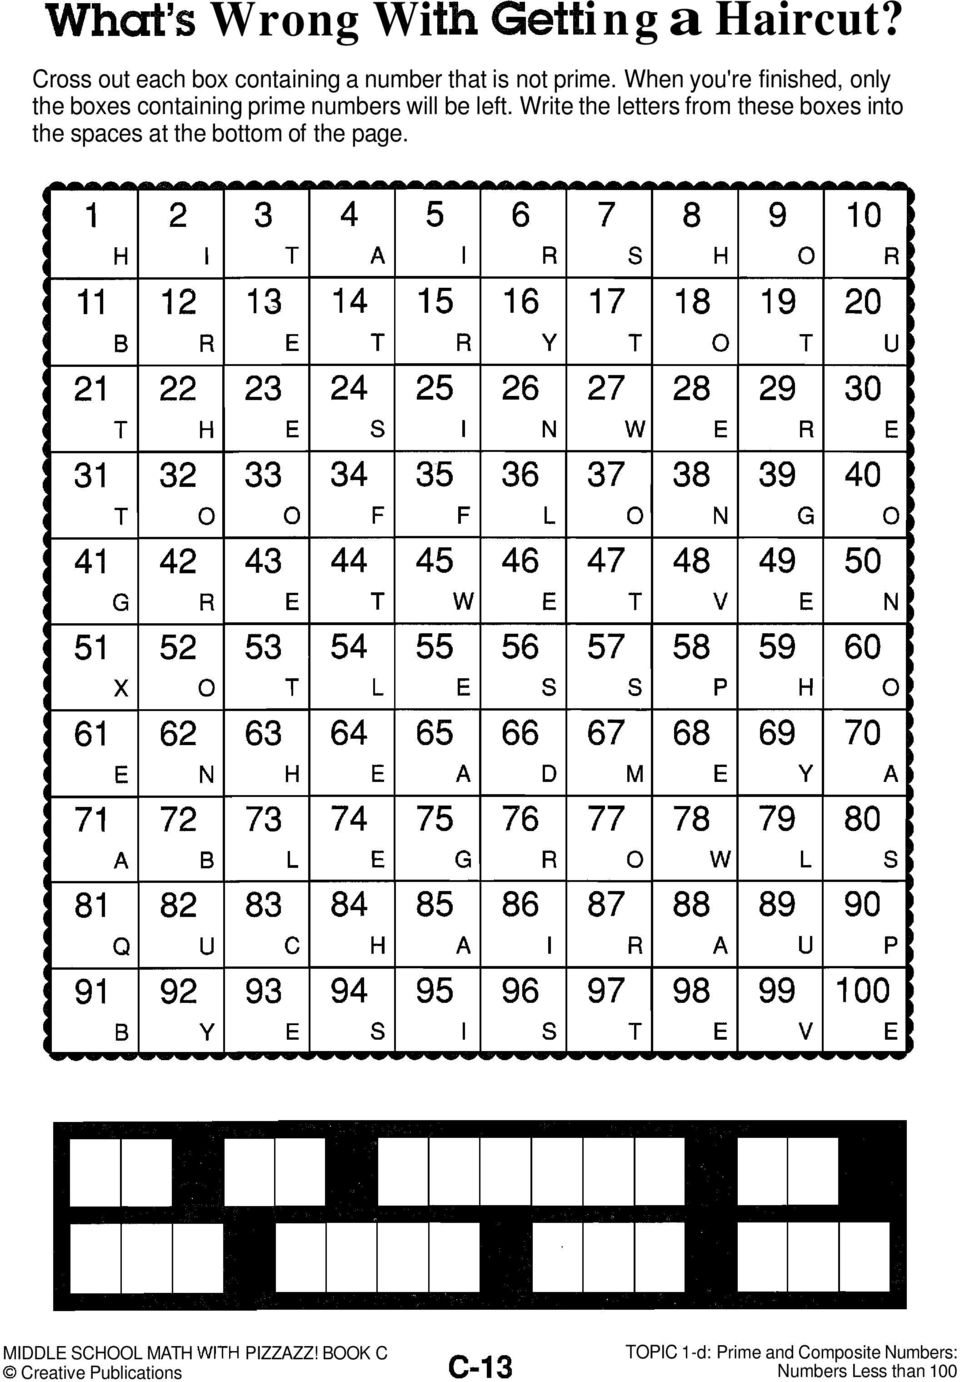 middle school math with pizzazz book d answer key d-35